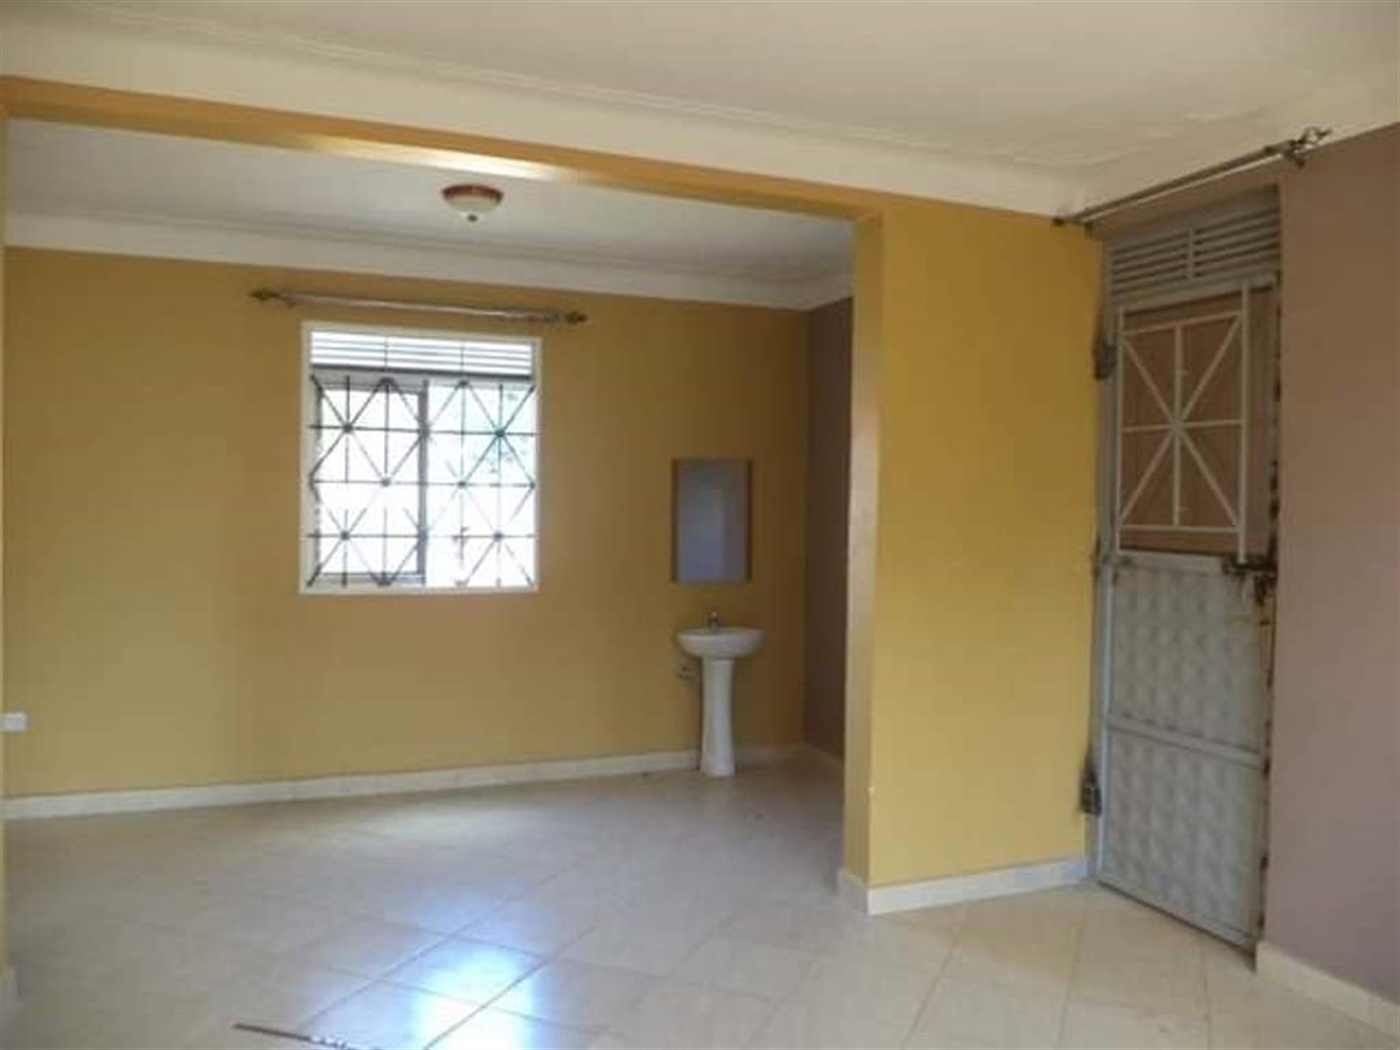 Rental units for sale in Kyaliwajjala Wakiso